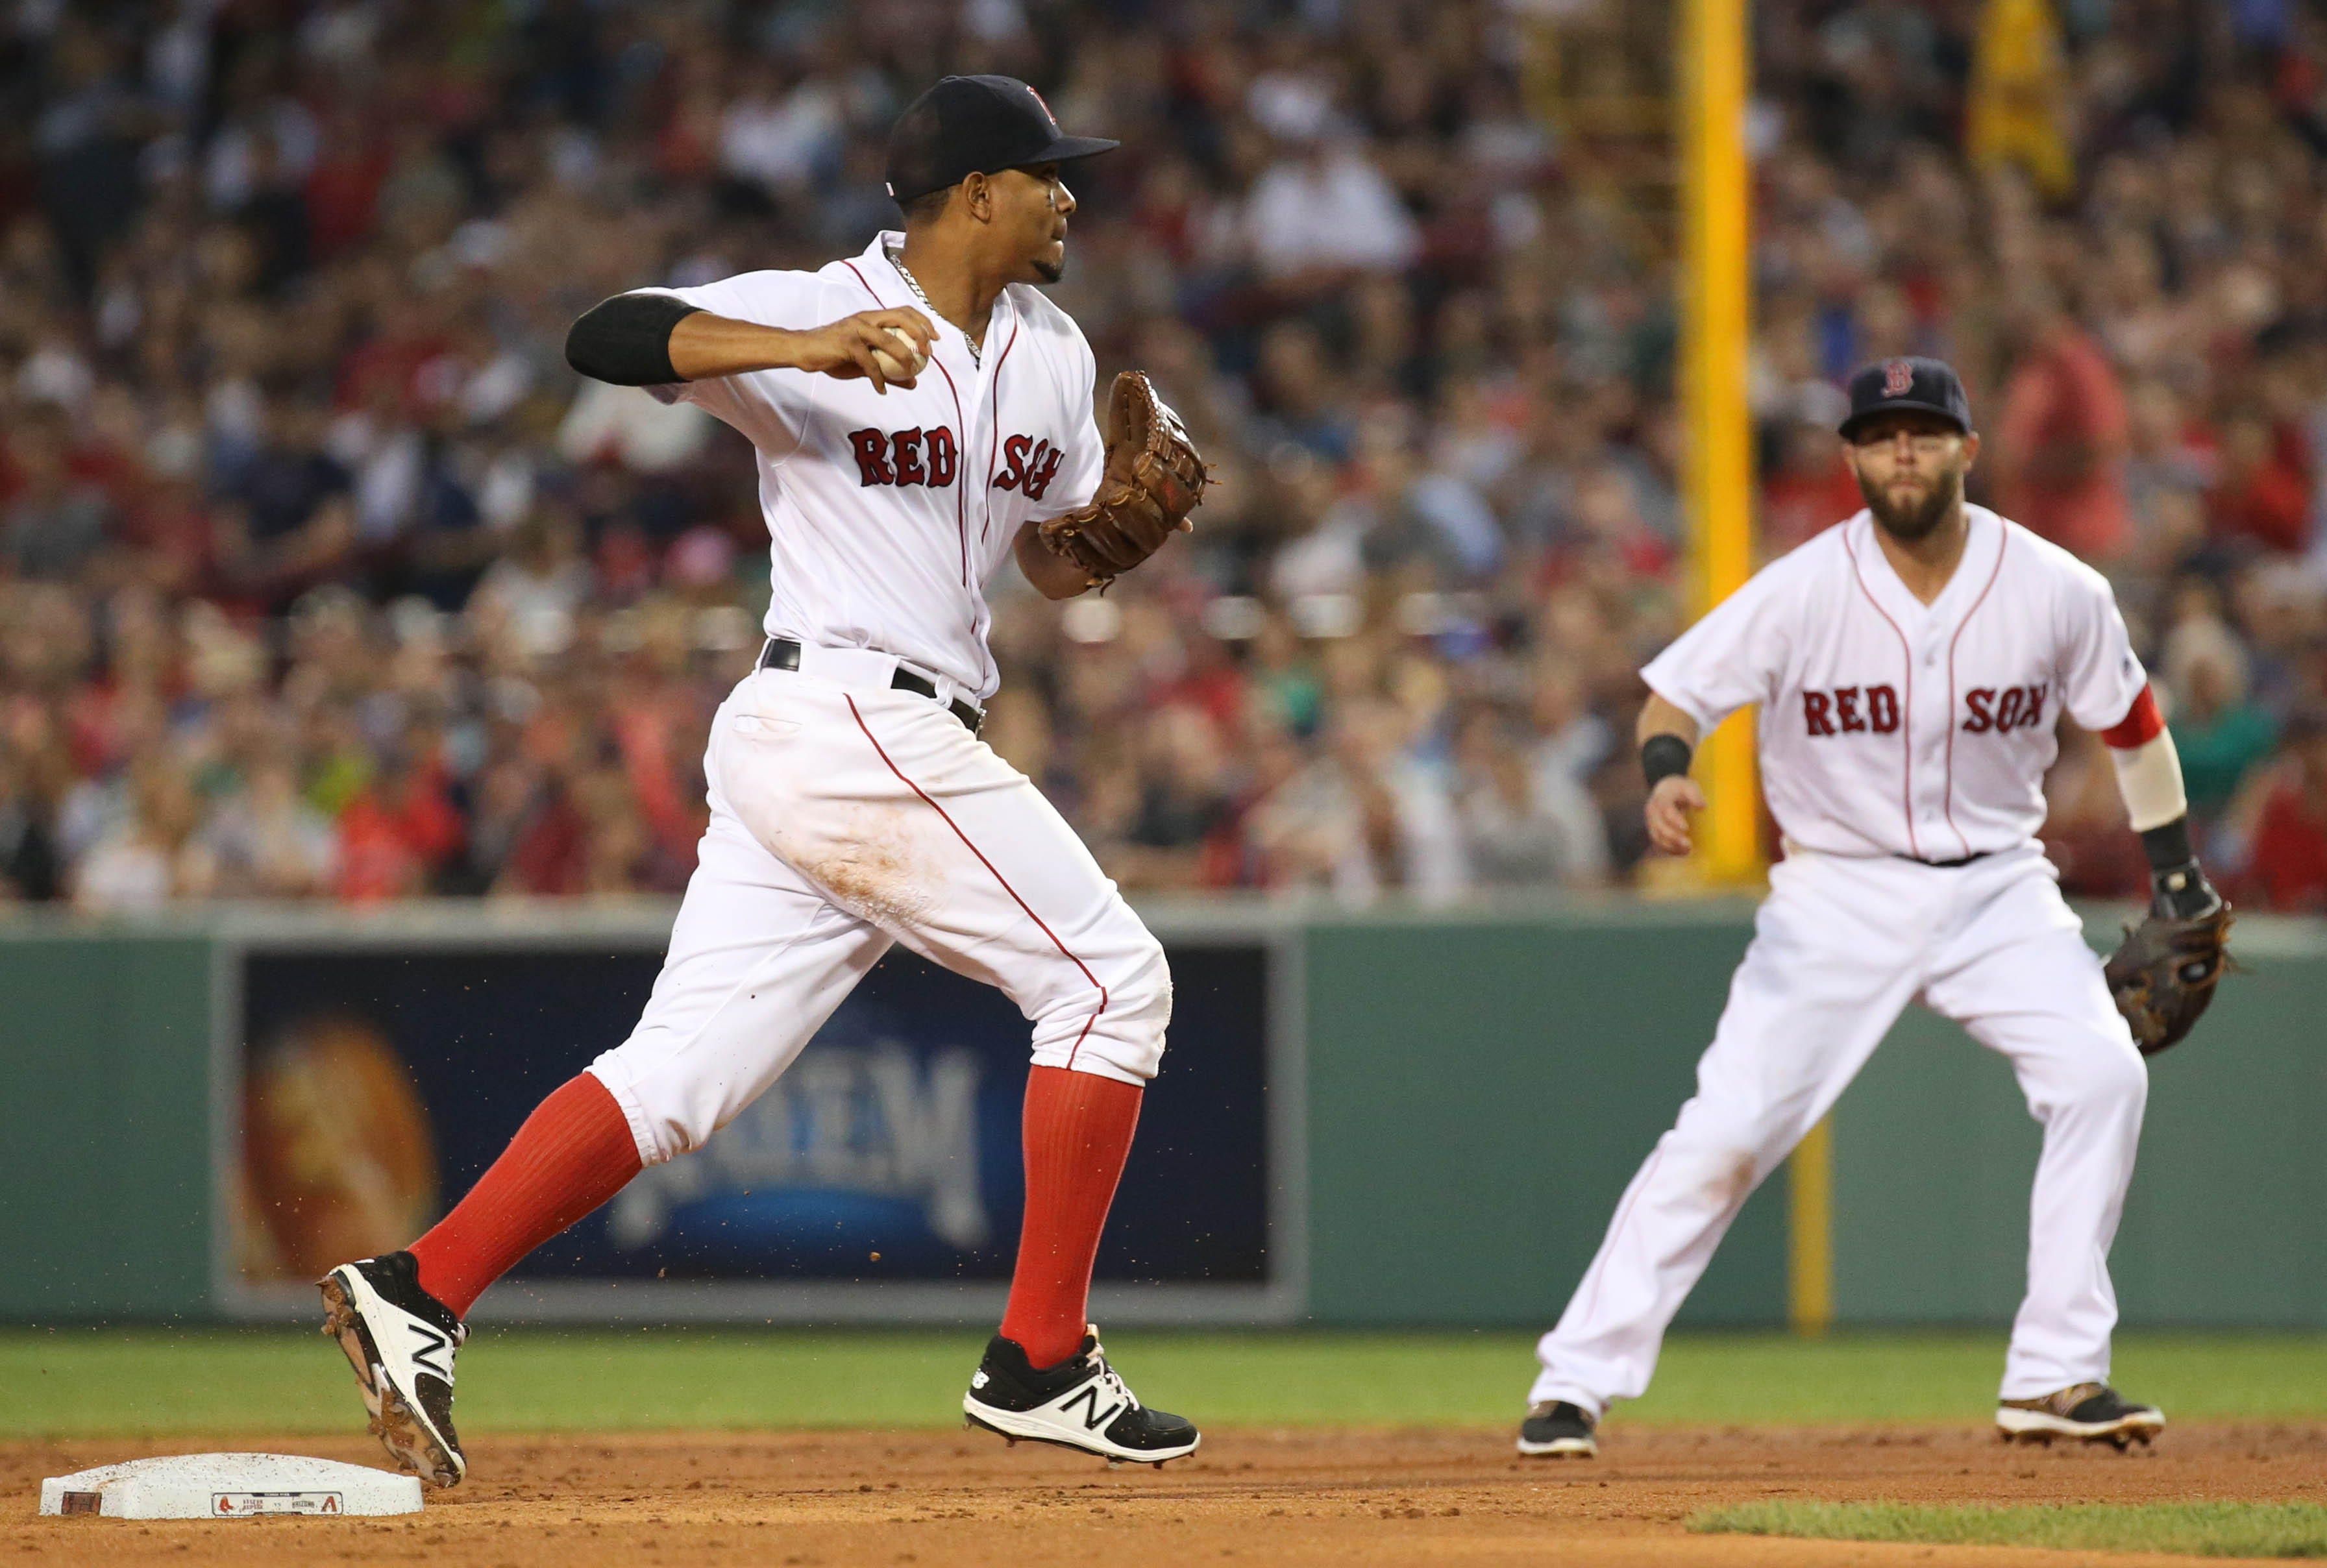 Red Sox: Xander Bogaerts, Dustin Pedroia among best middle infield duo's